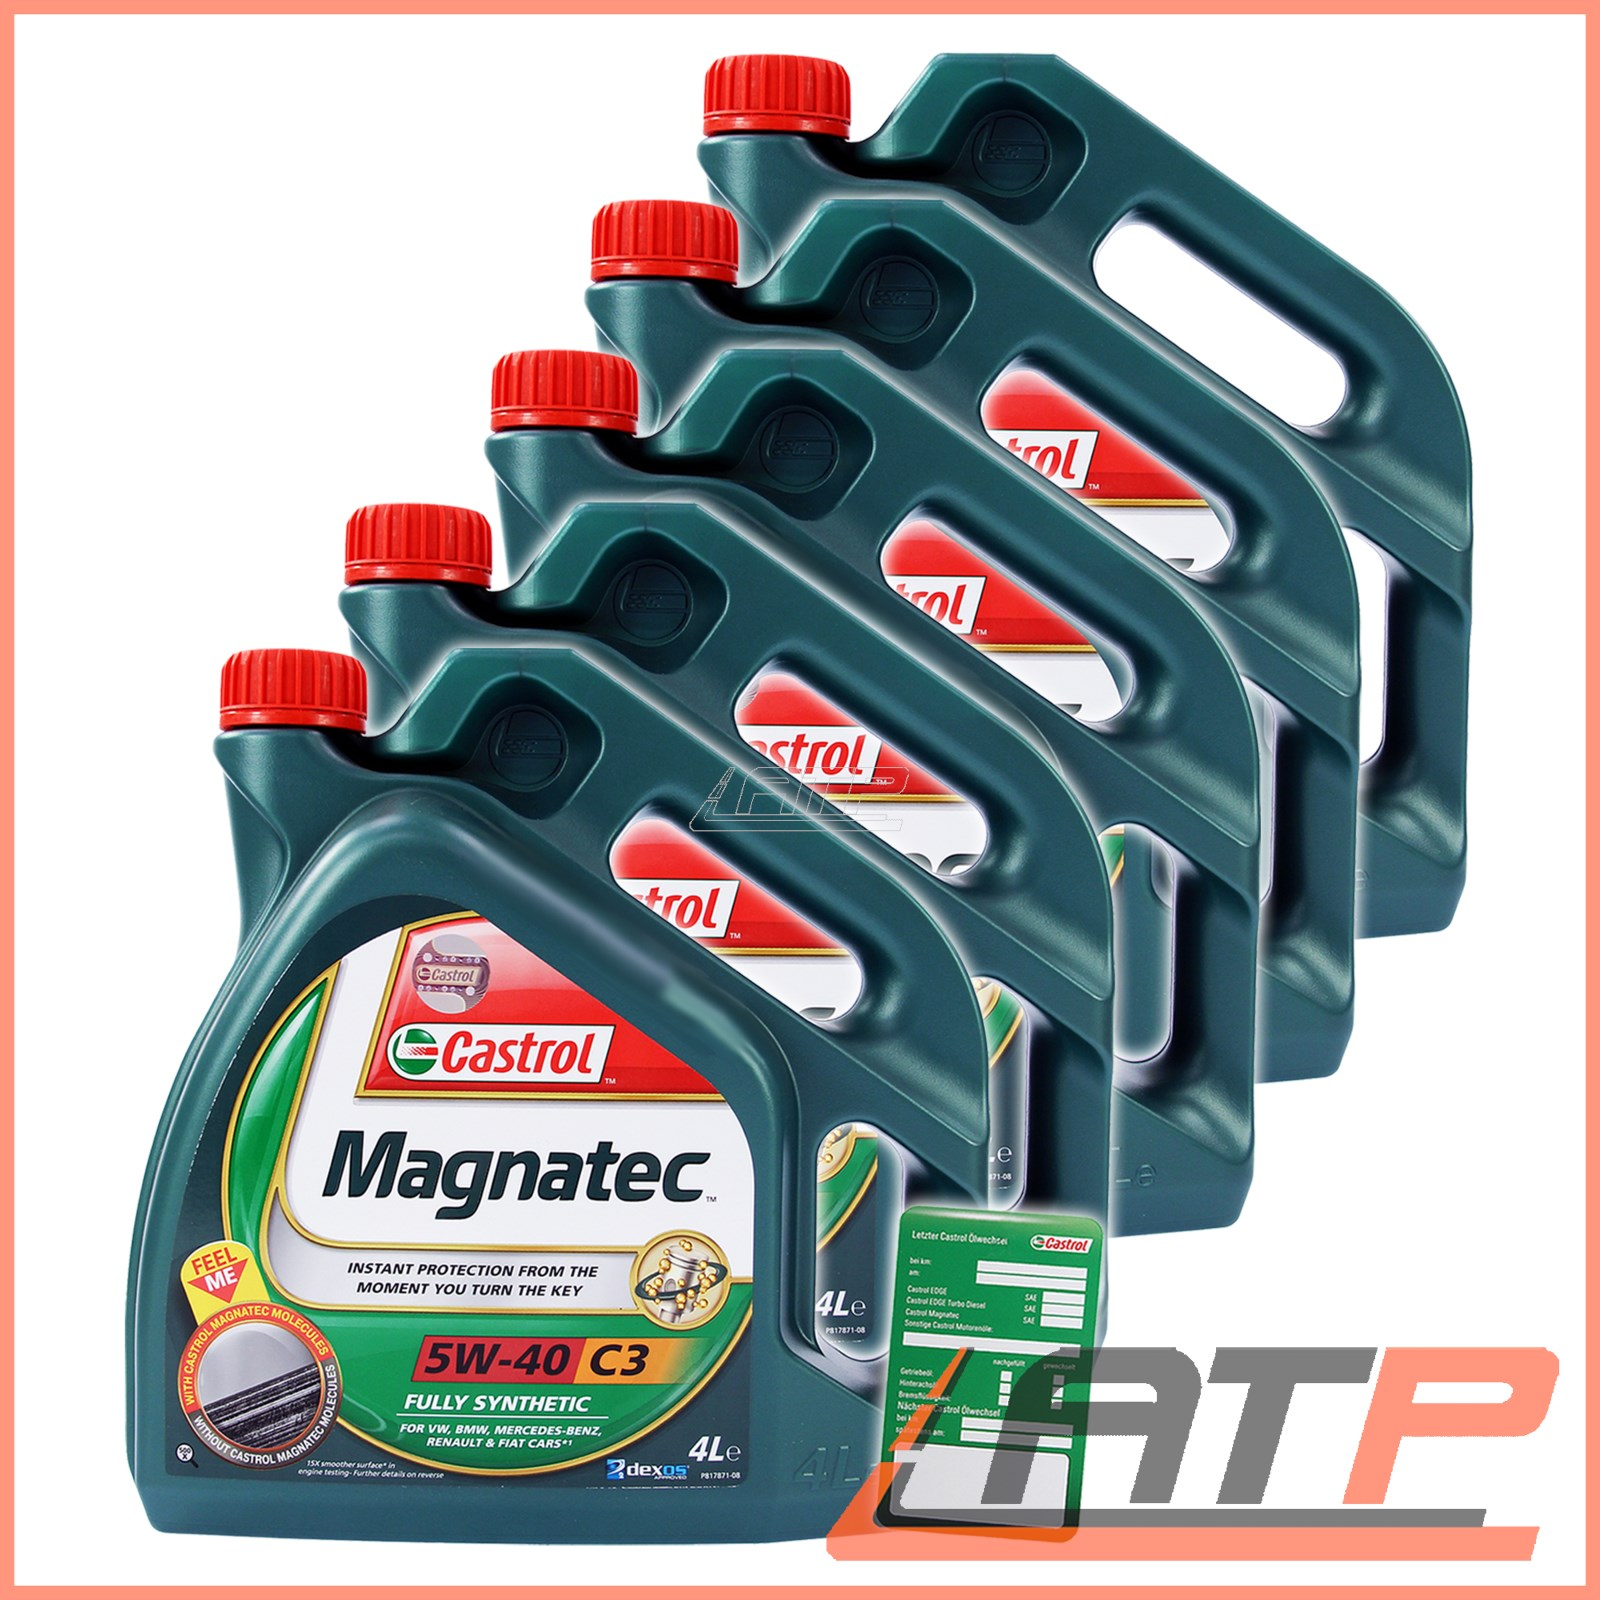 5x 4 l 20 litre castrol magnatec 5w 40 c3 engine oil acea c3 ebay. Black Bedroom Furniture Sets. Home Design Ideas